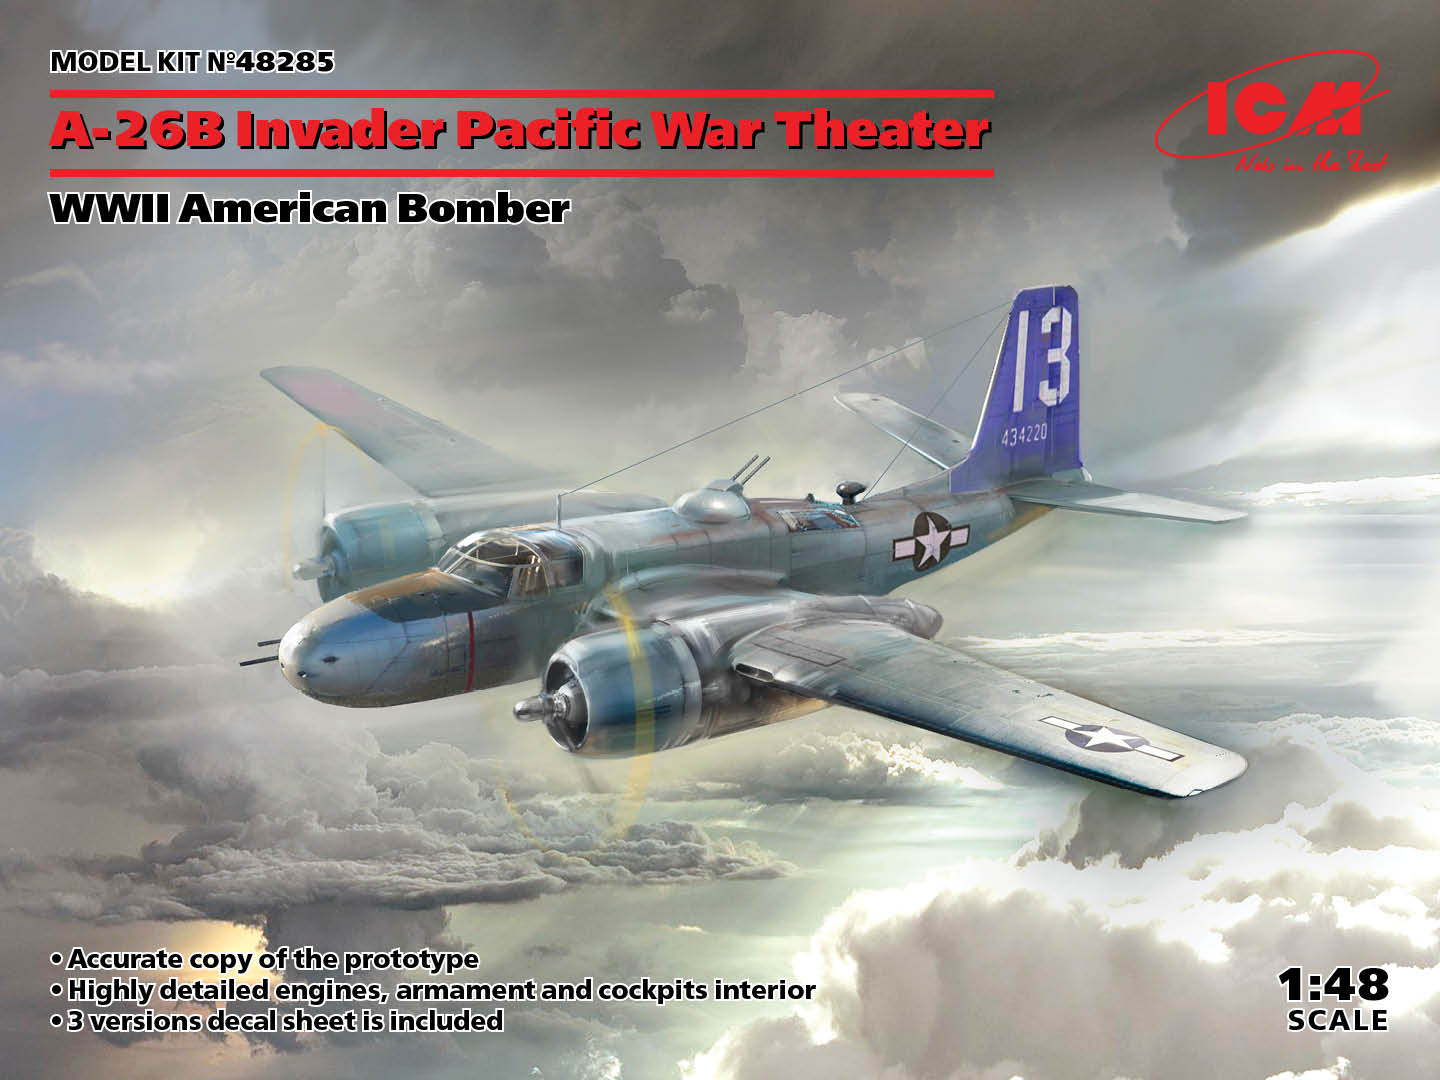 A-26B Invader Pacific War Theater, WWII American Bomber